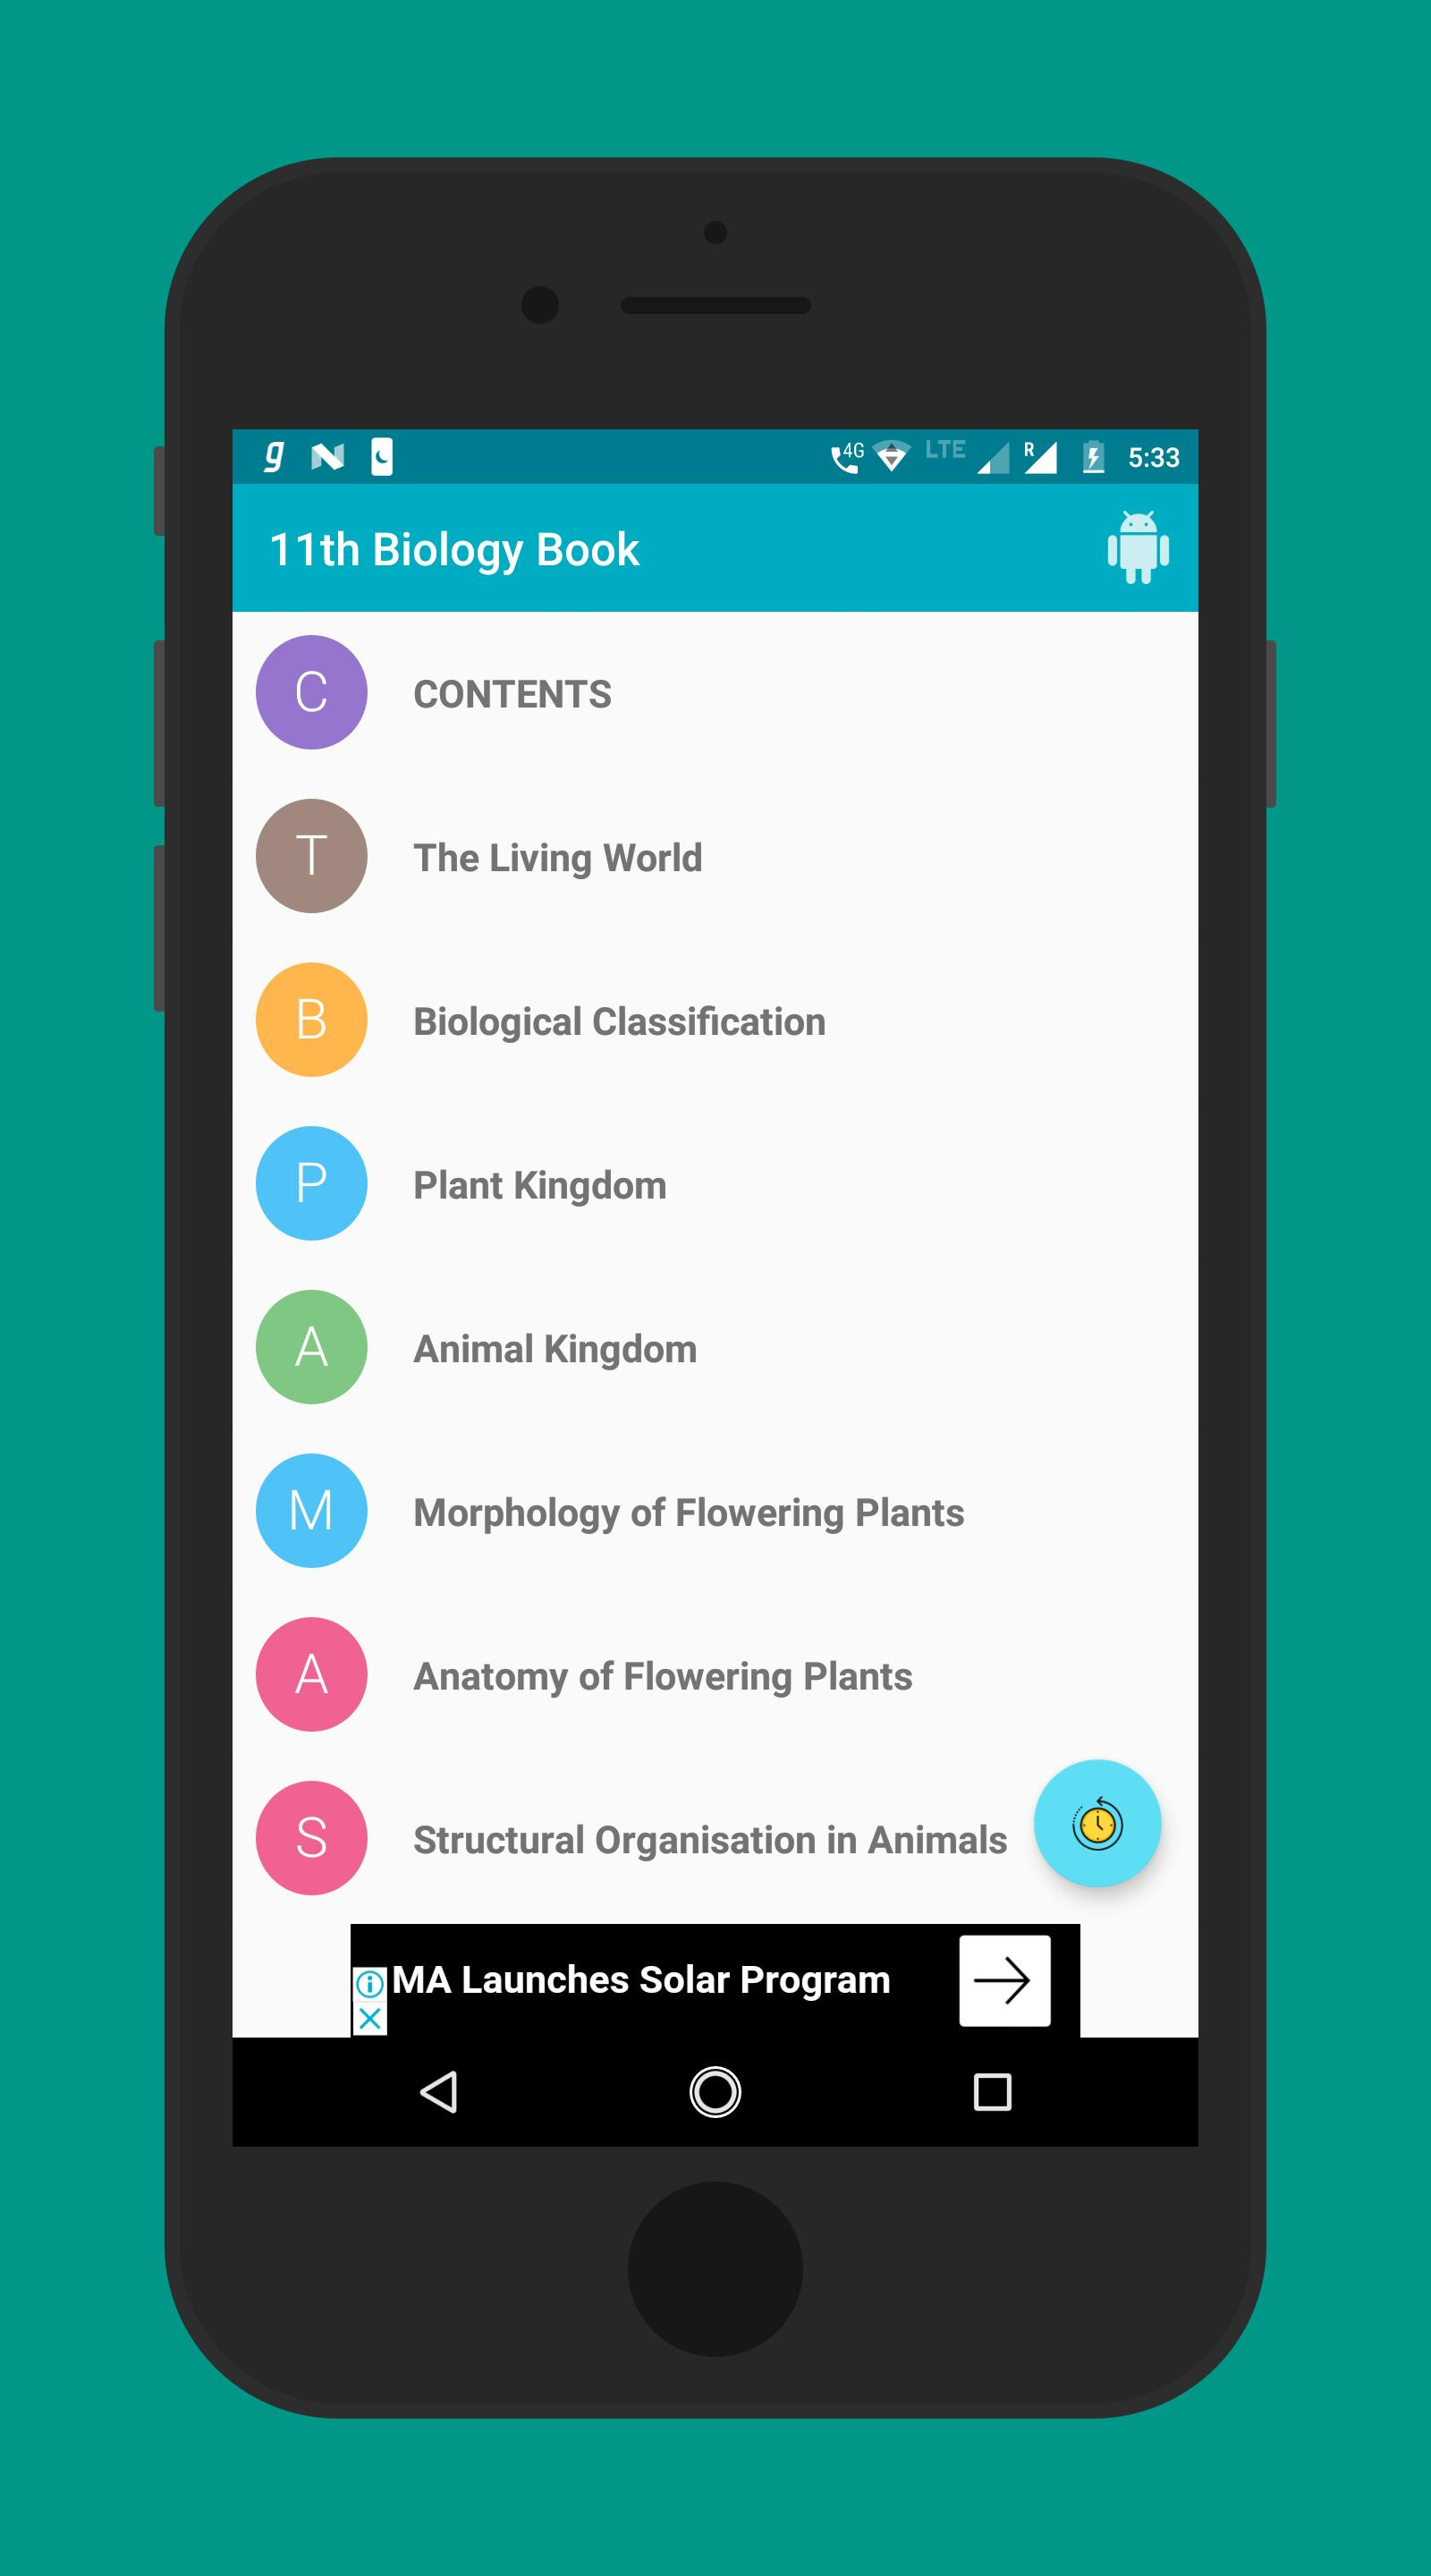 11th NCERT Biology Textbook for Android - APK Download